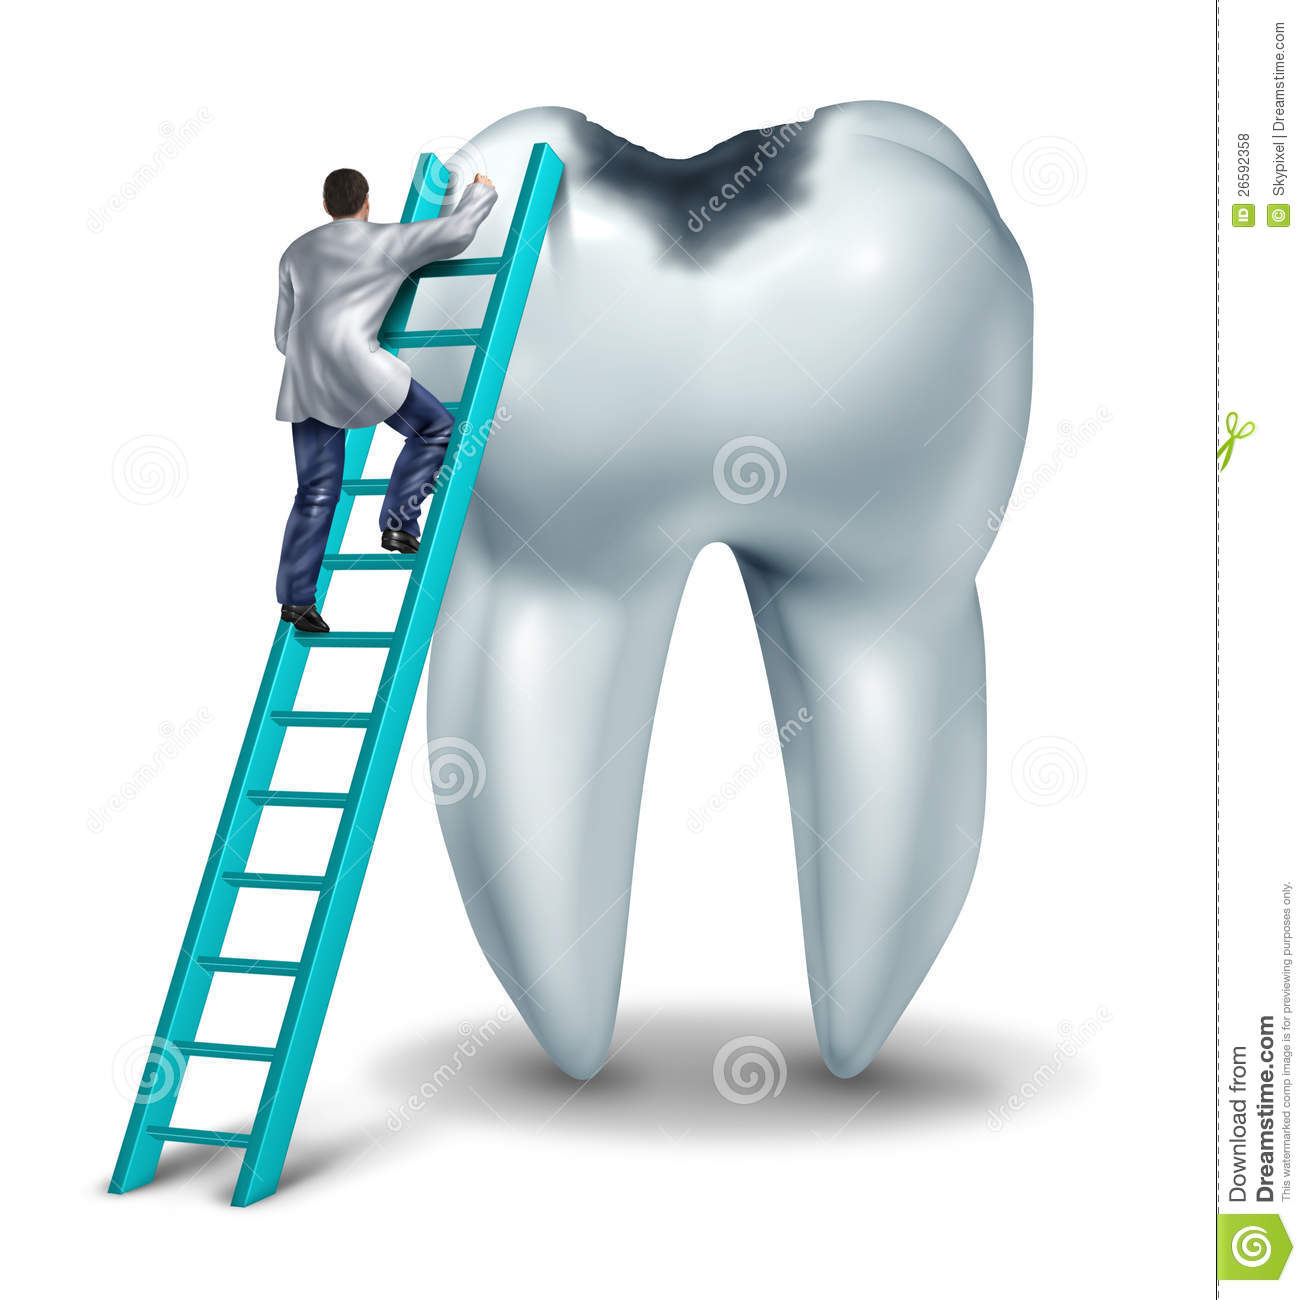 dental-care-26592358.jpg